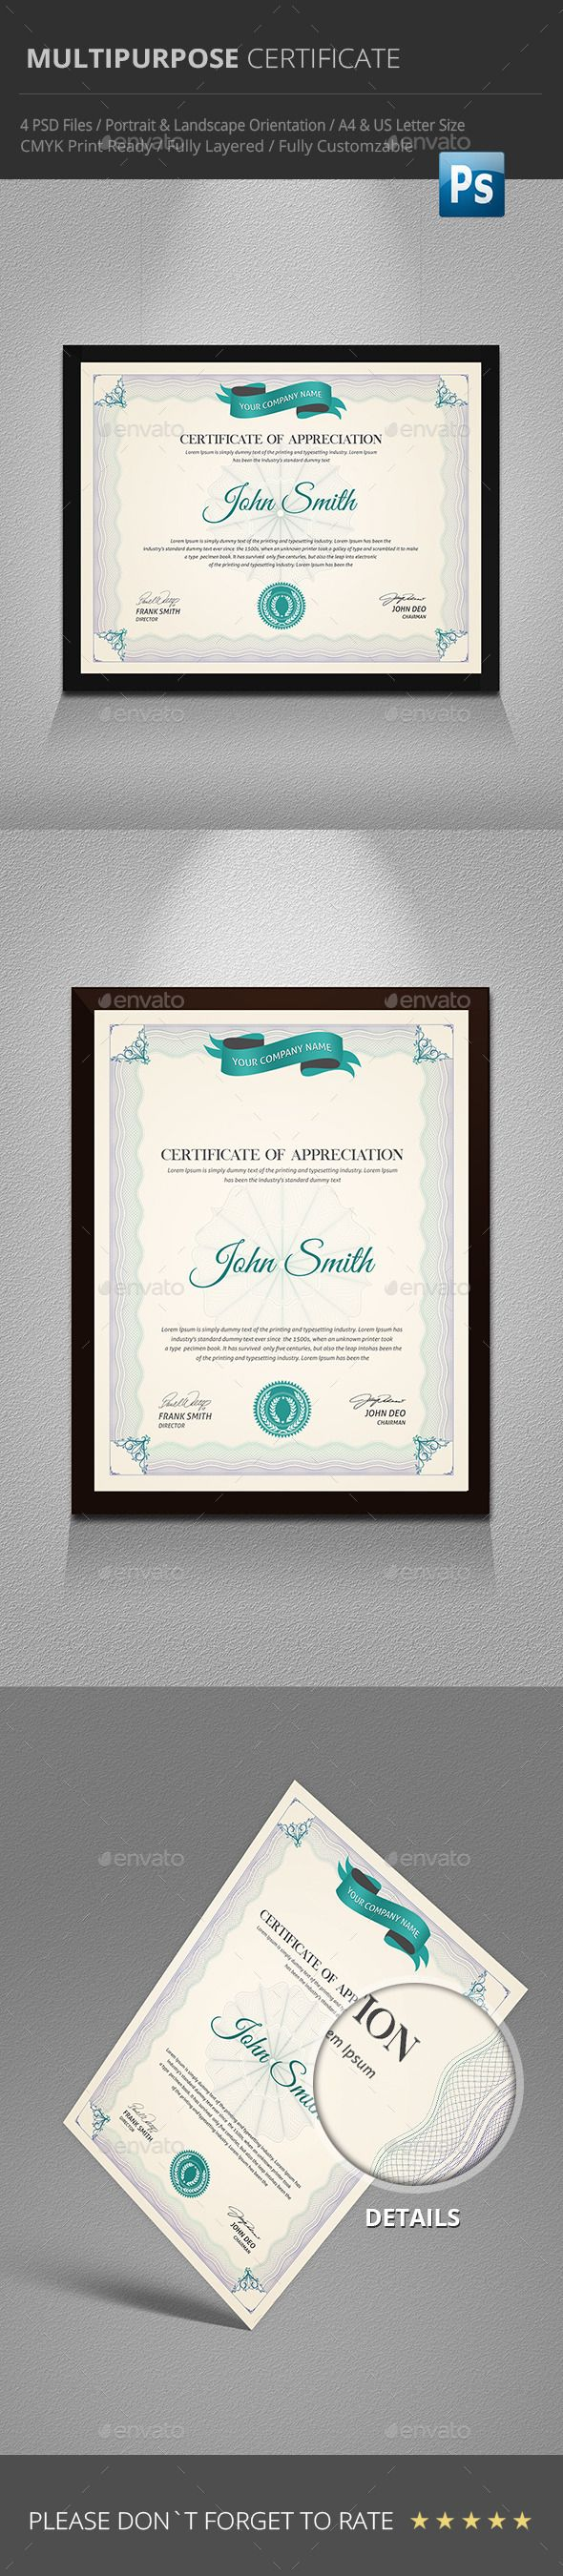 30 best certificate images on pinterest infographic templates certificate yadclub Choice Image